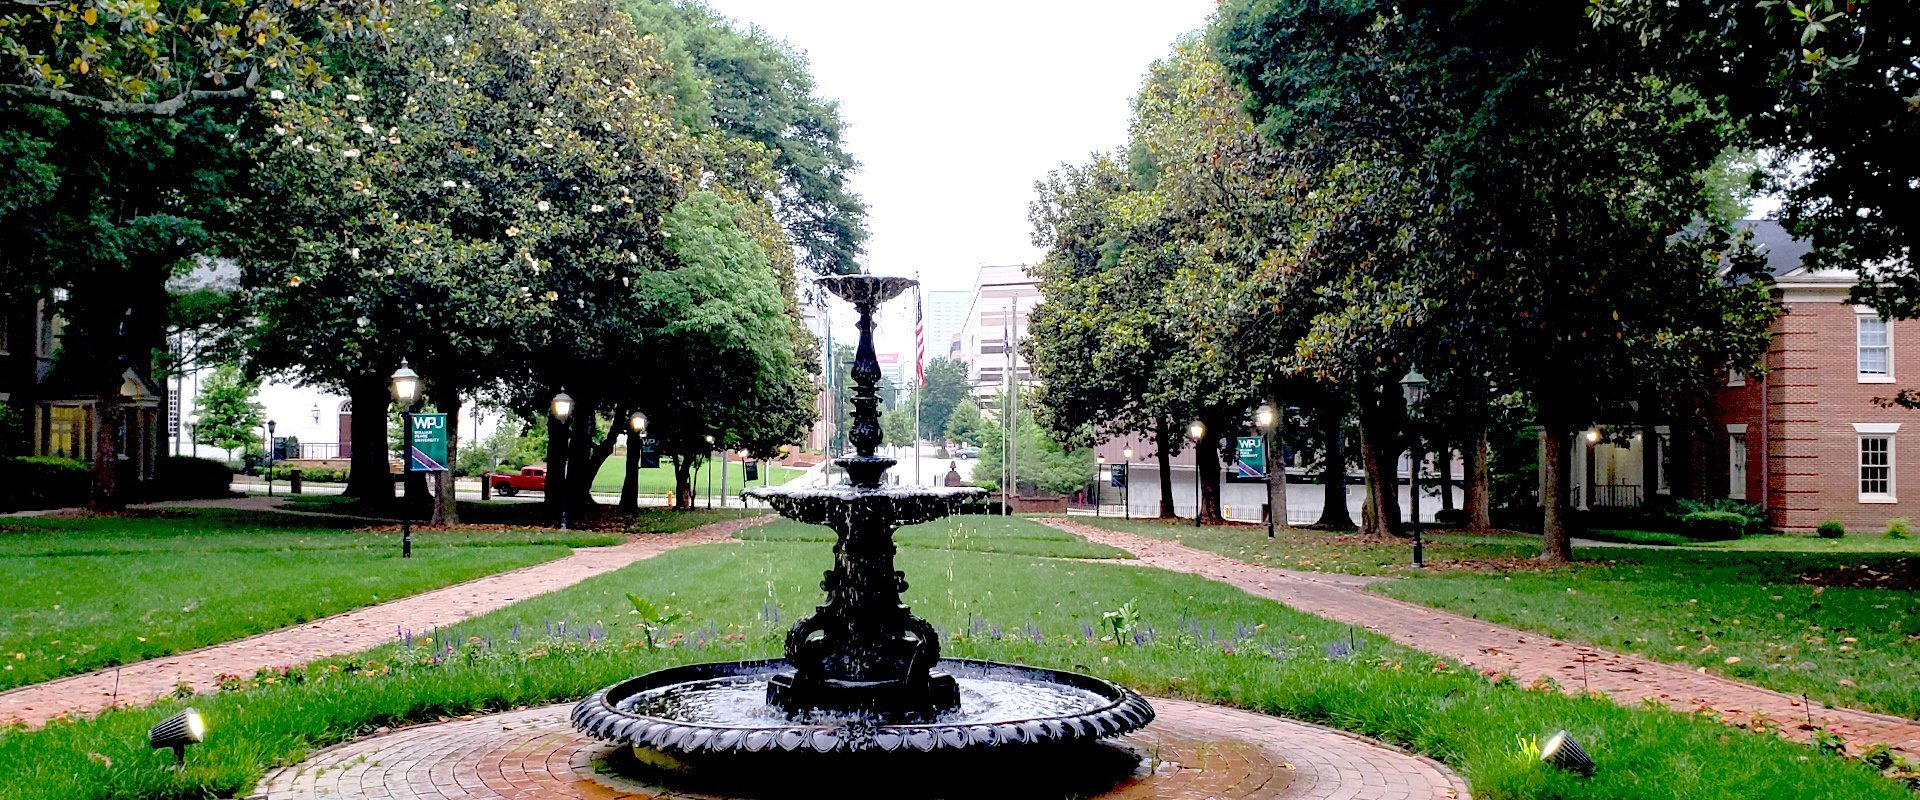 William Peace University Downtown Raleigh NC Historic Fountain - WPU Advancement; Communications and Marketing Win Regional Awards at CASE III Conference in Nashville, TN